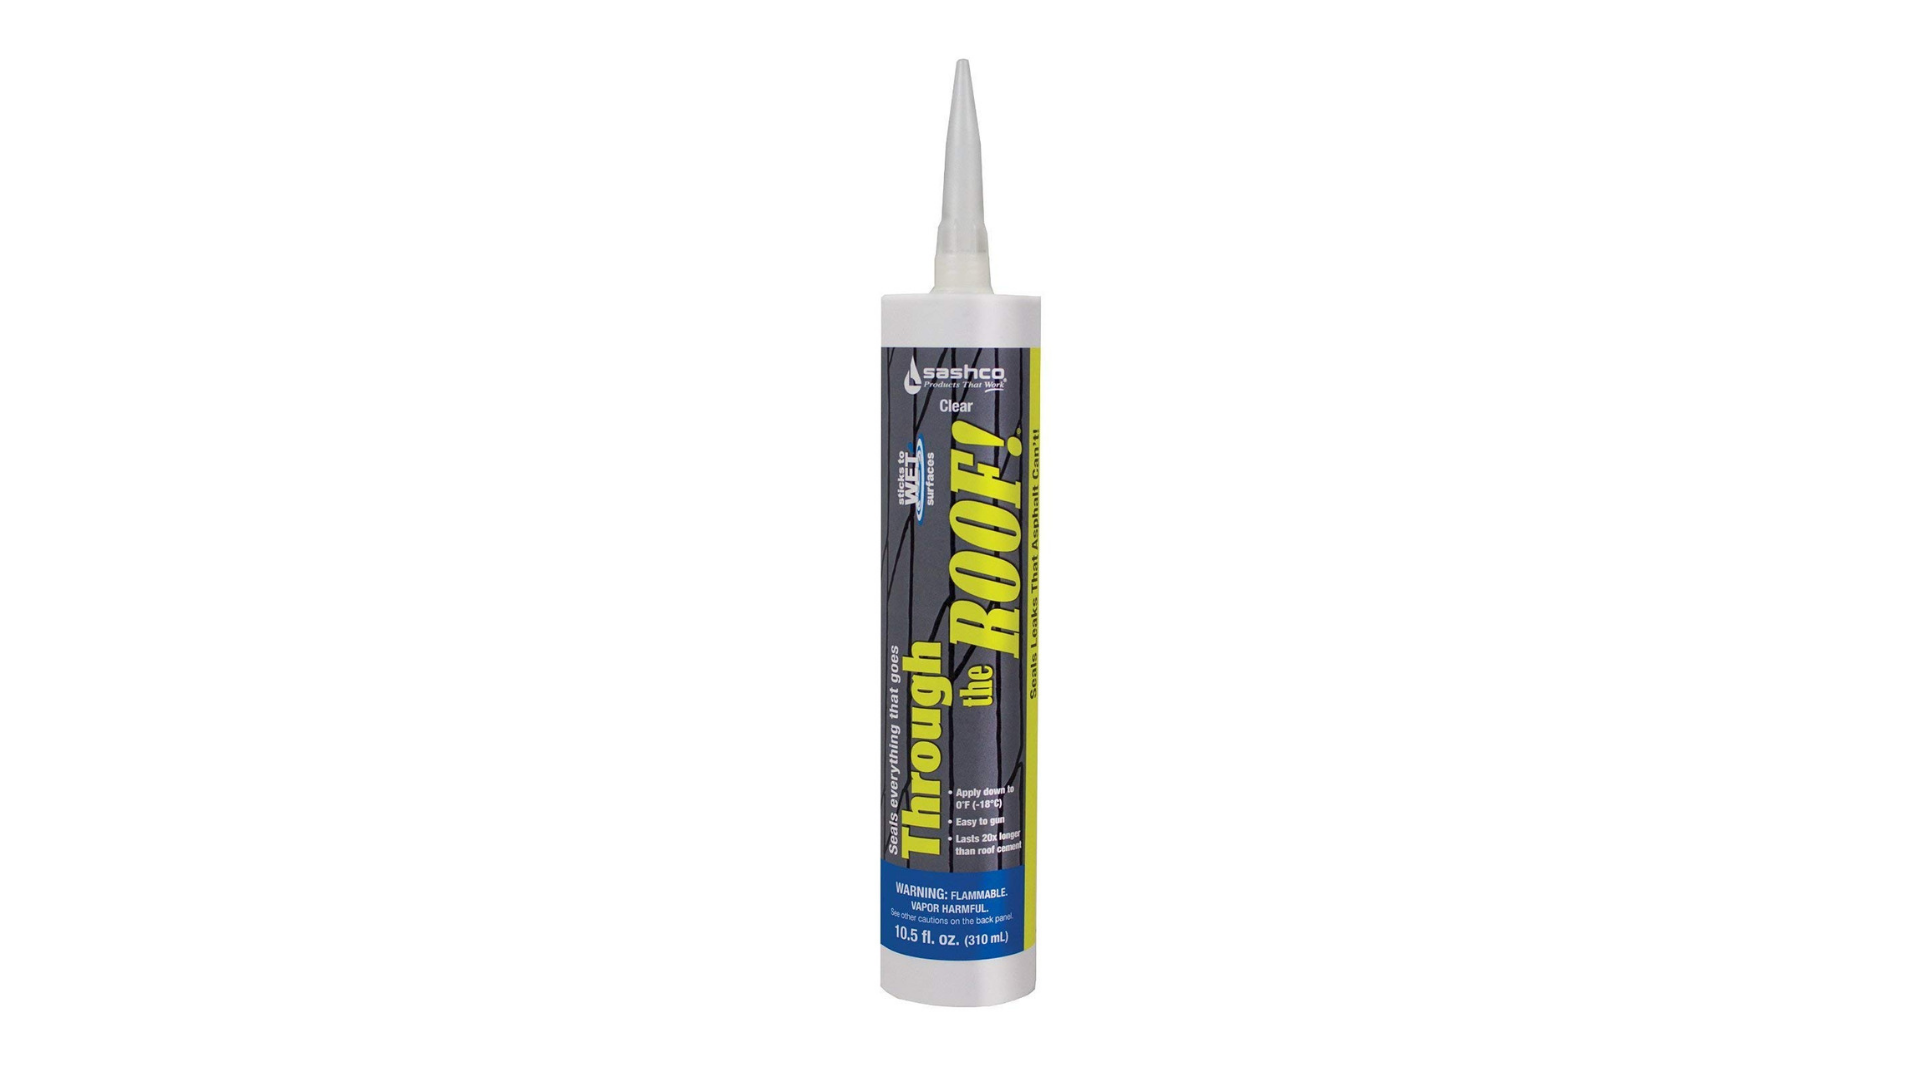 Sashco Through The Roof Cement Amp Patching Sealant Review